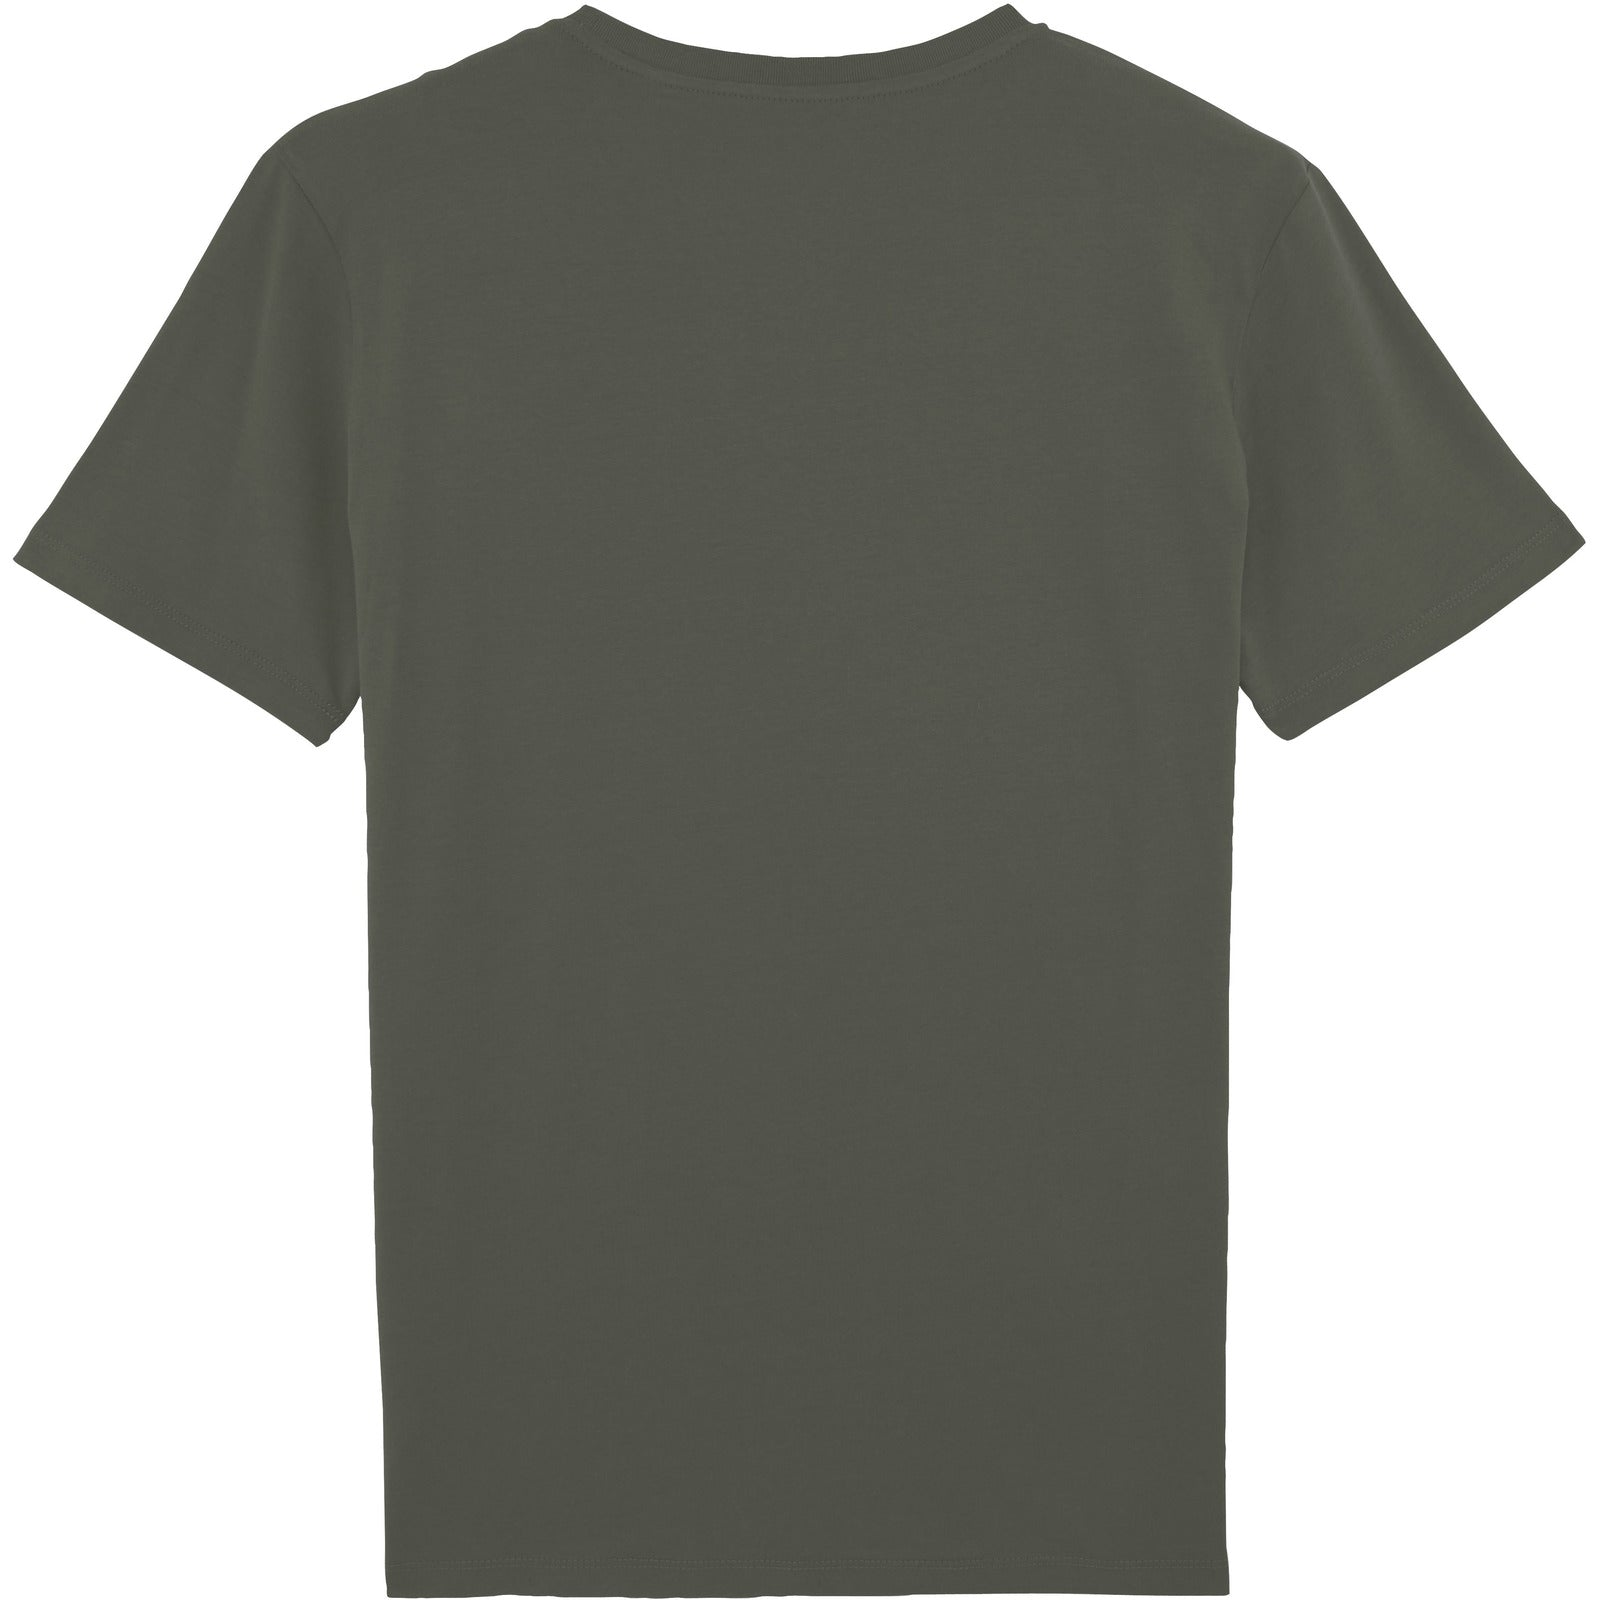 T-SHIRT REGULAR FIT [KHAKI]